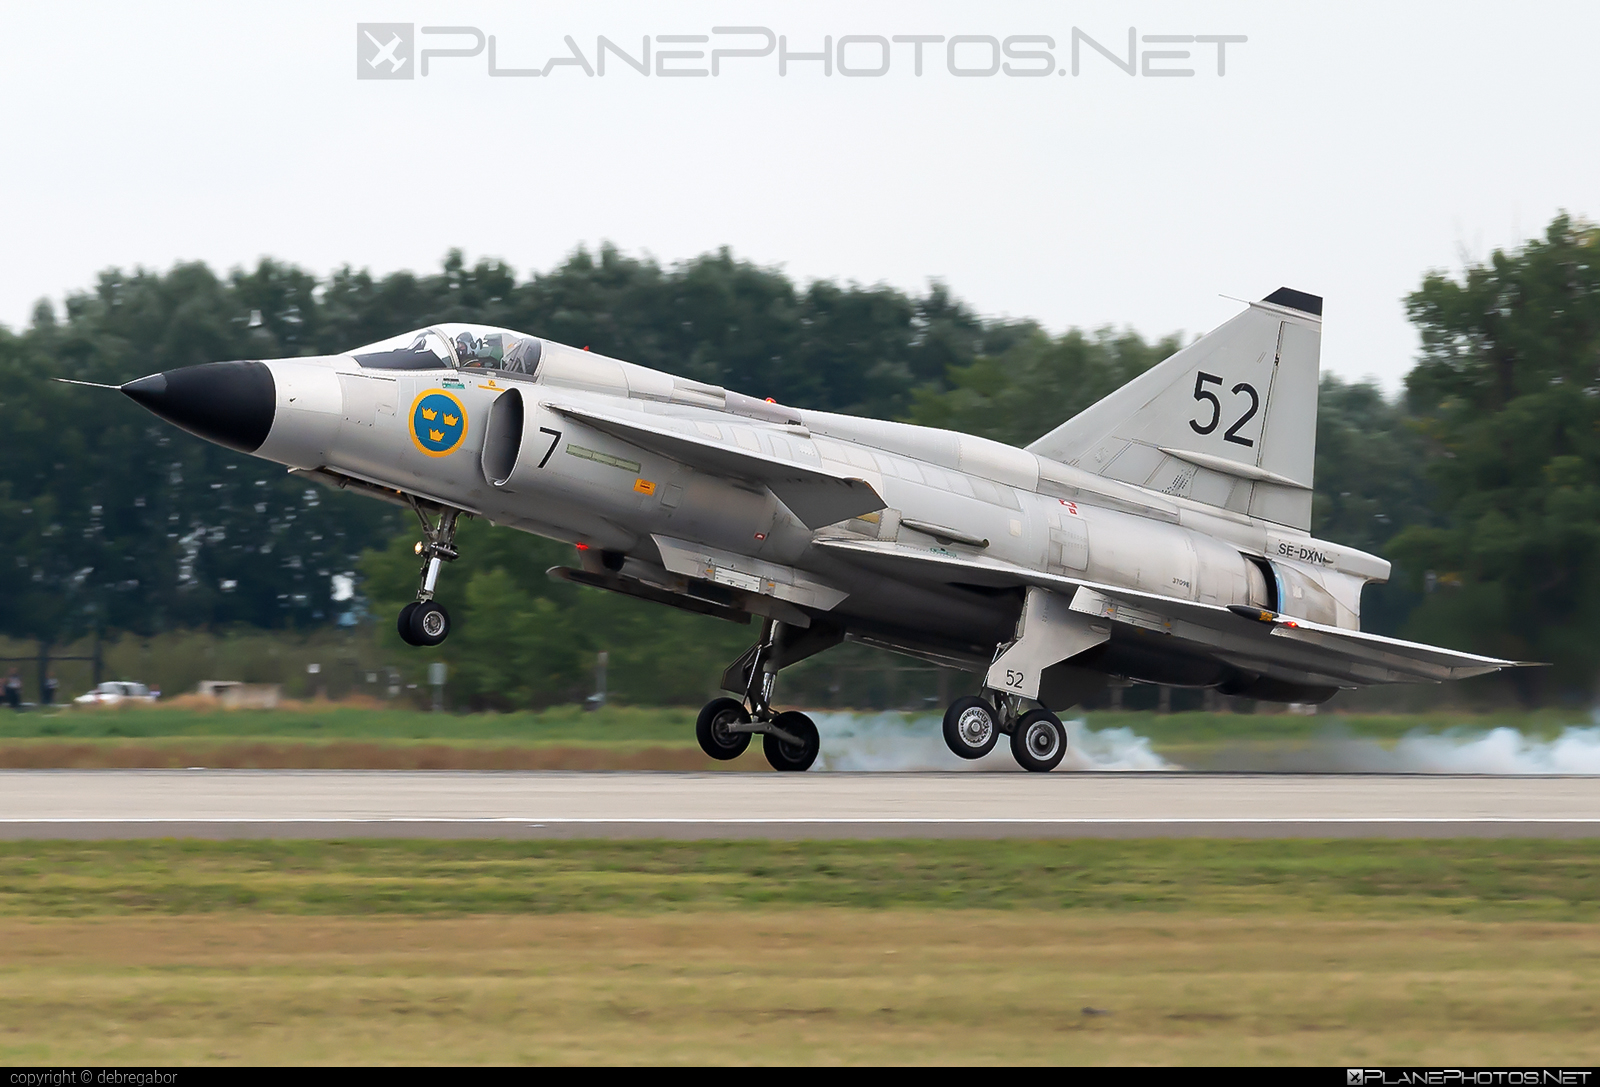 Saab AJSF 37 Viggen - SE-DXN operated by Swedish Air Force Historic Flight #ajsf37 #ajsf37viggen #kecskemetairshow2021 #saab #saab37 #saabajsf37 #saabajsf37viggen #saabviggen #viggen